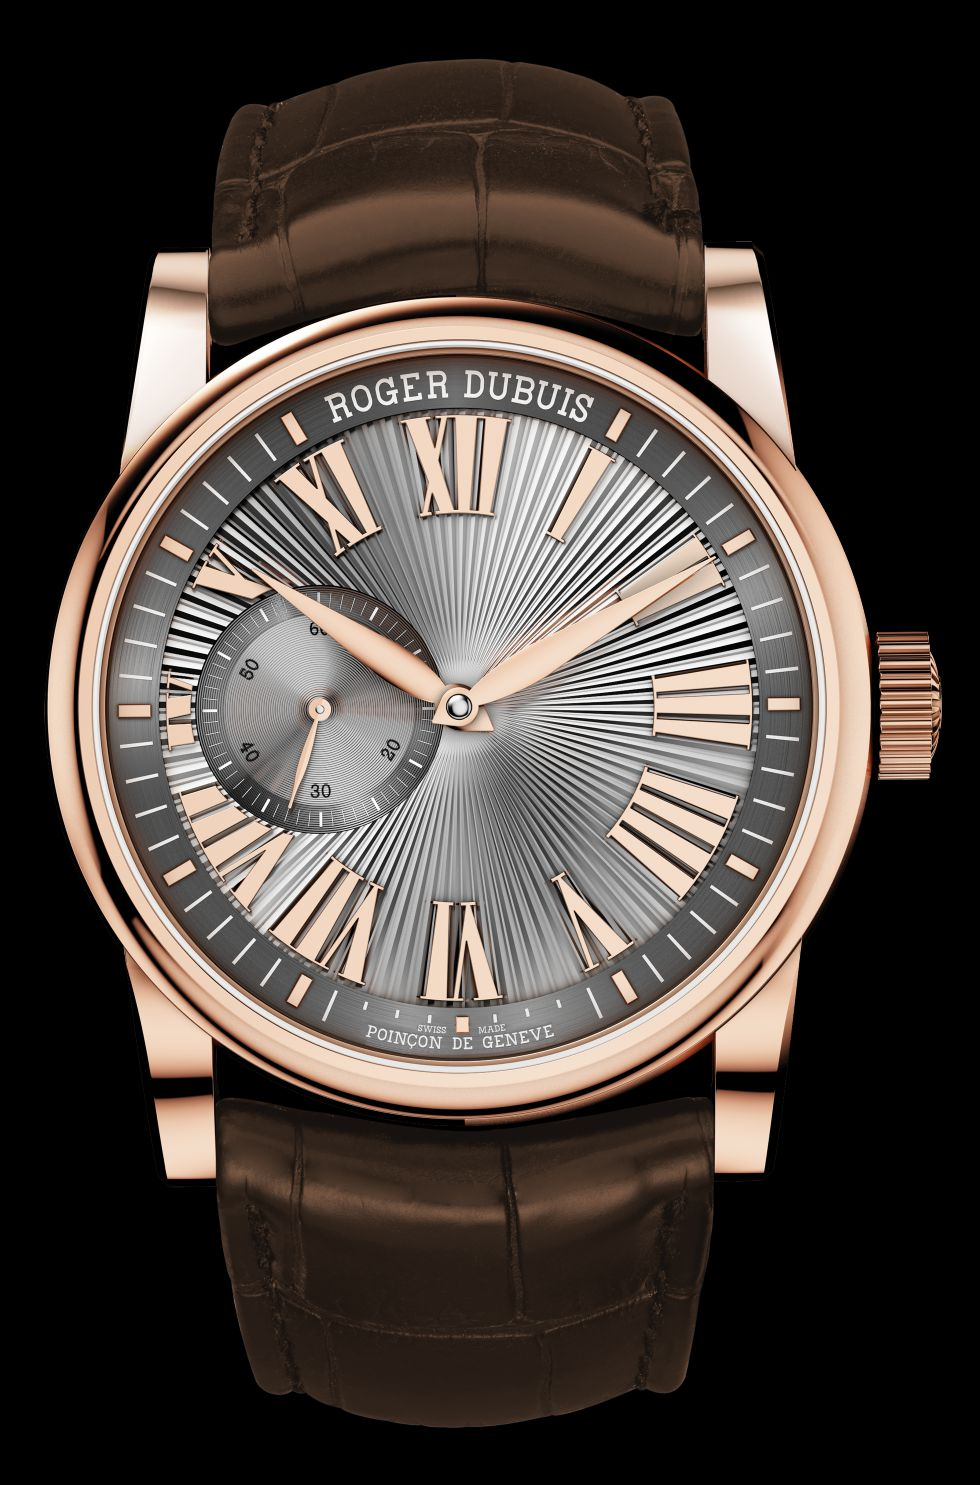 Roger Dubuis Hommage Automatico